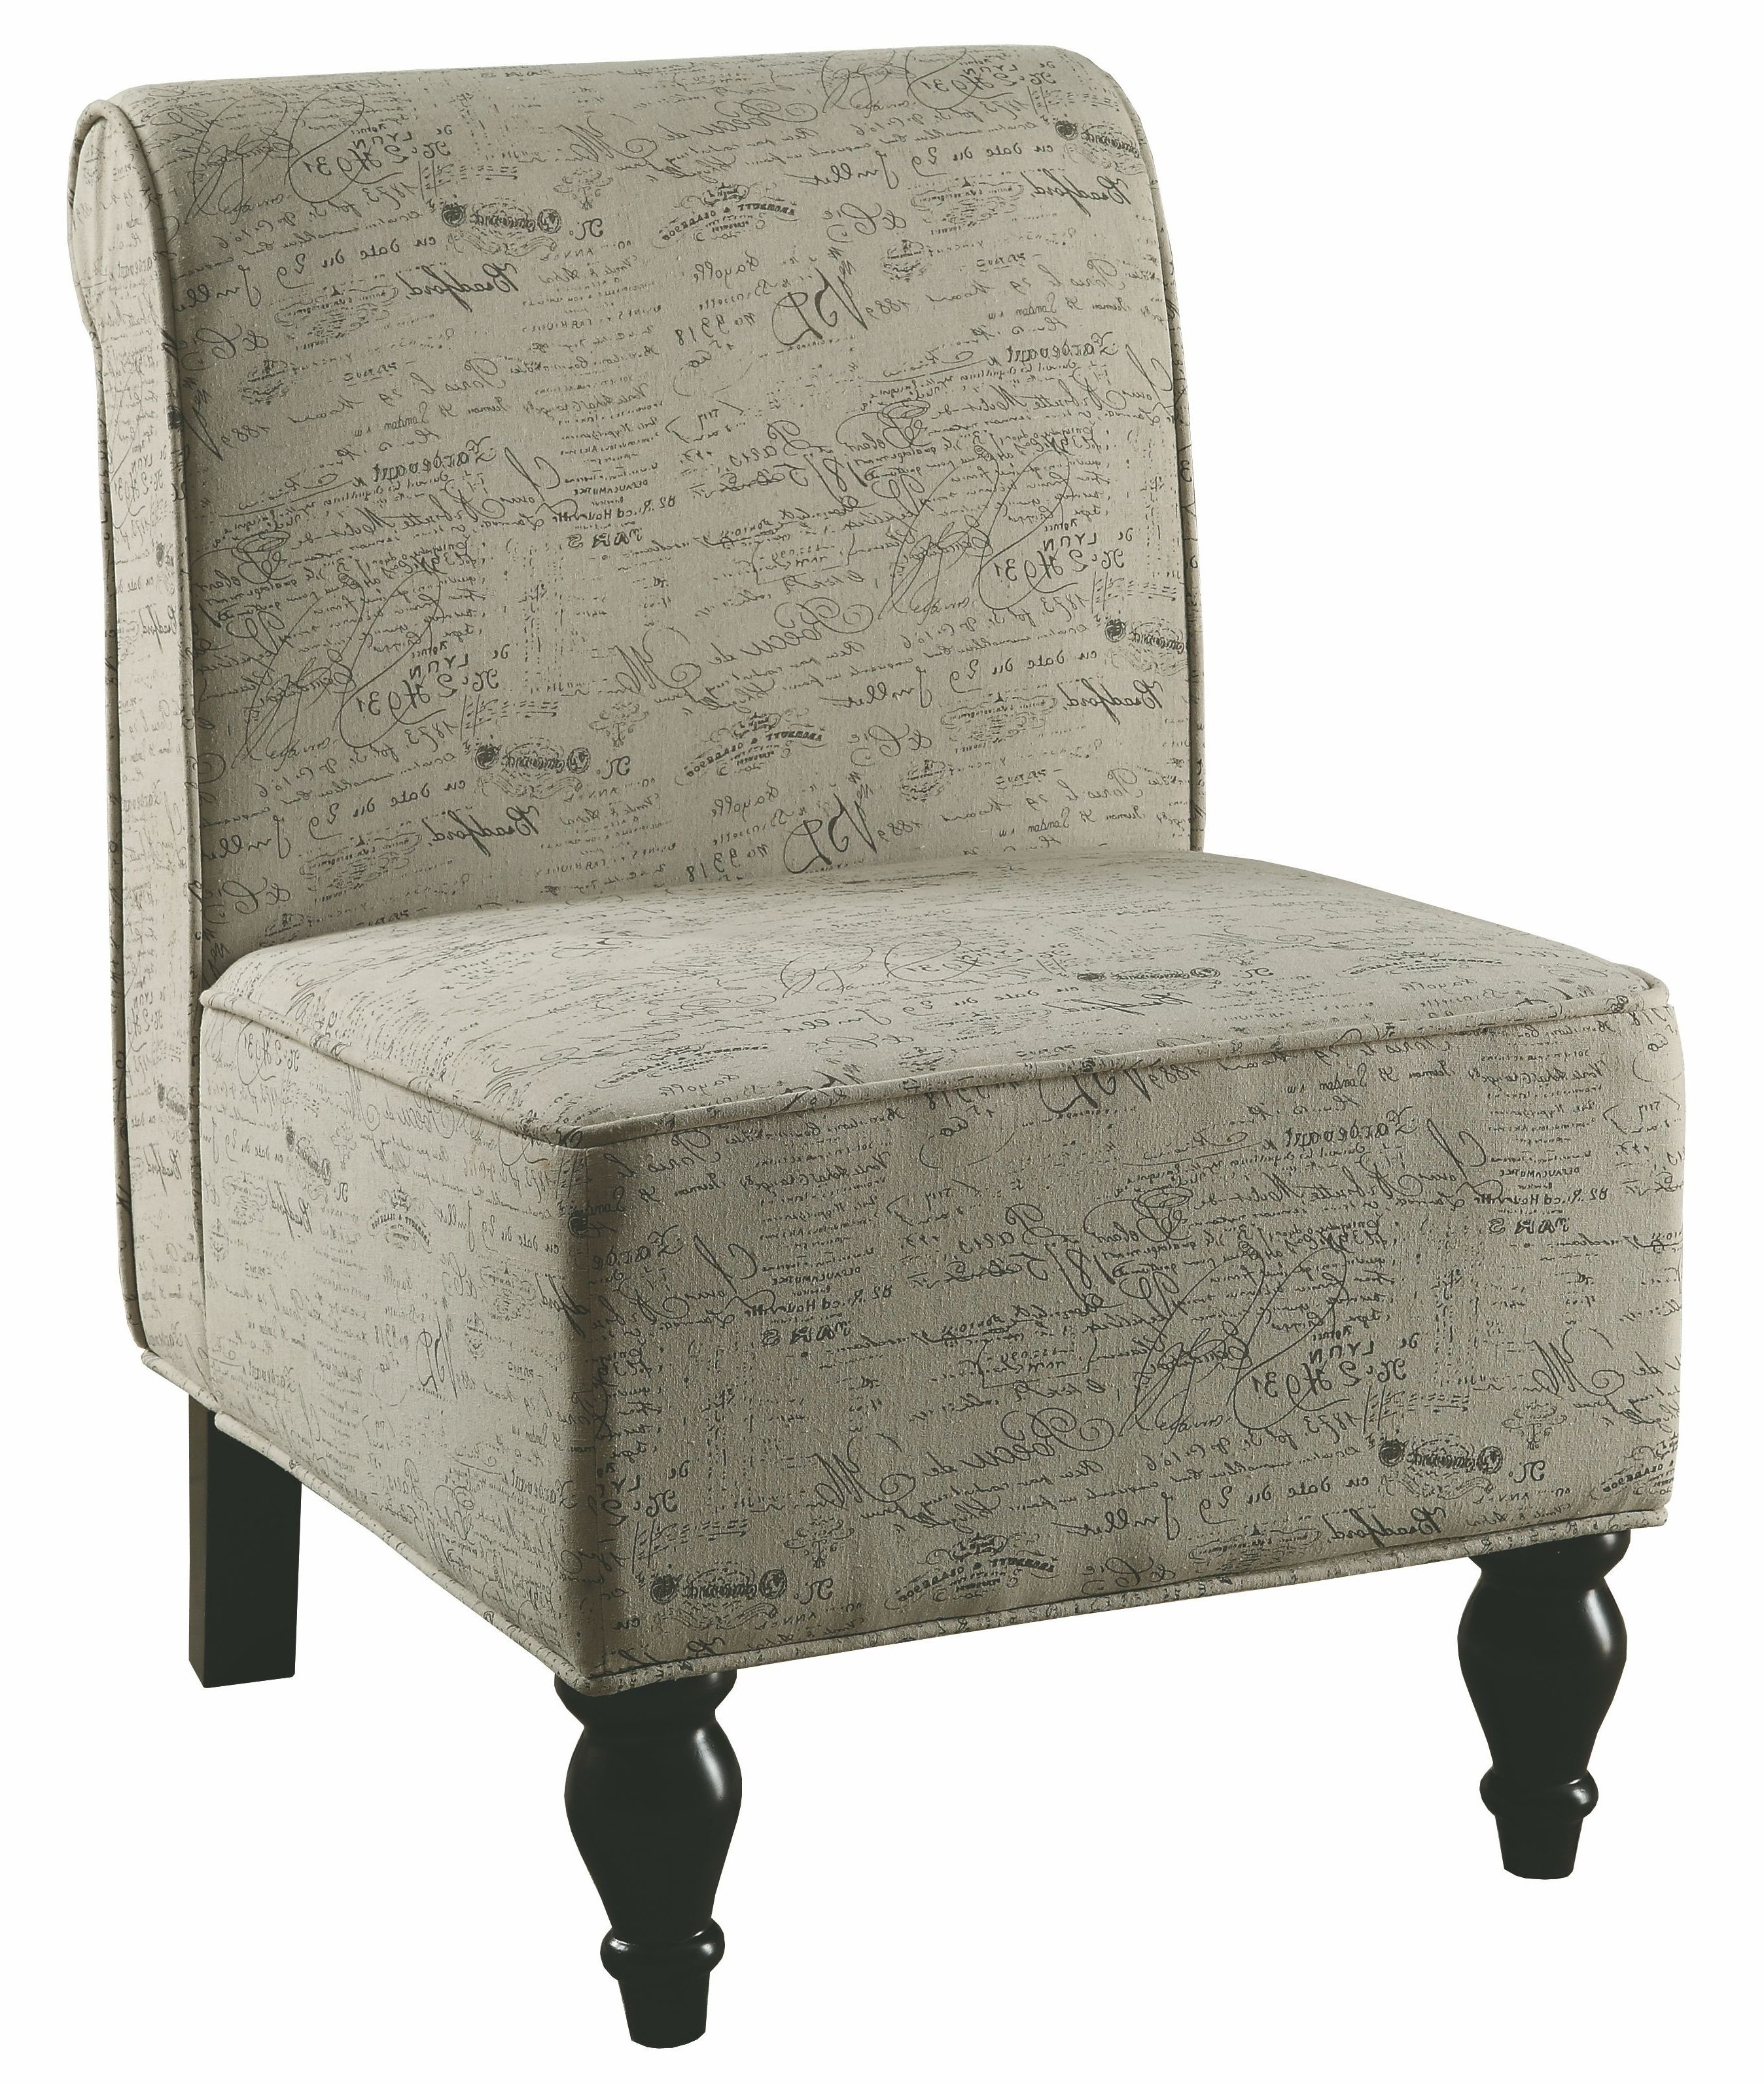 Vintage Accent Chair 8123 Vintage French Fabric Traditional Accent Chair From